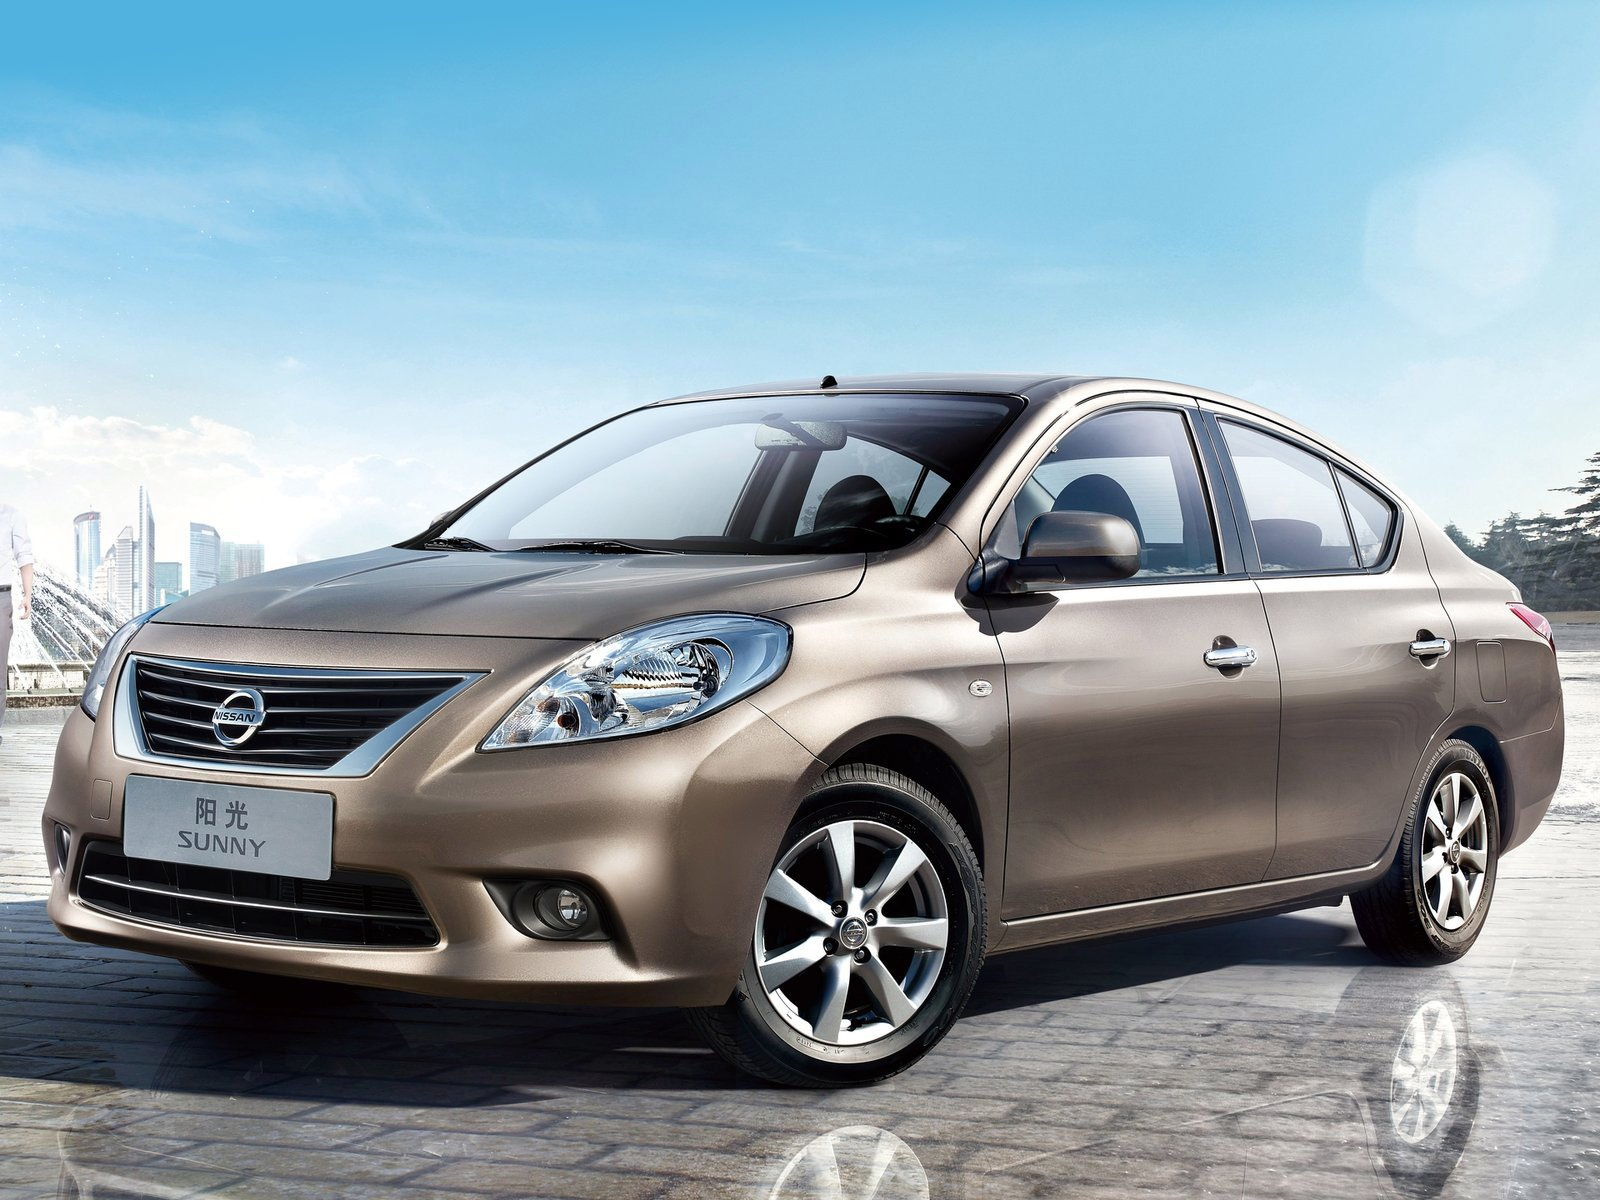 Latest 2012 Nissan Sunny Car Desktop Wallpaper Free Download